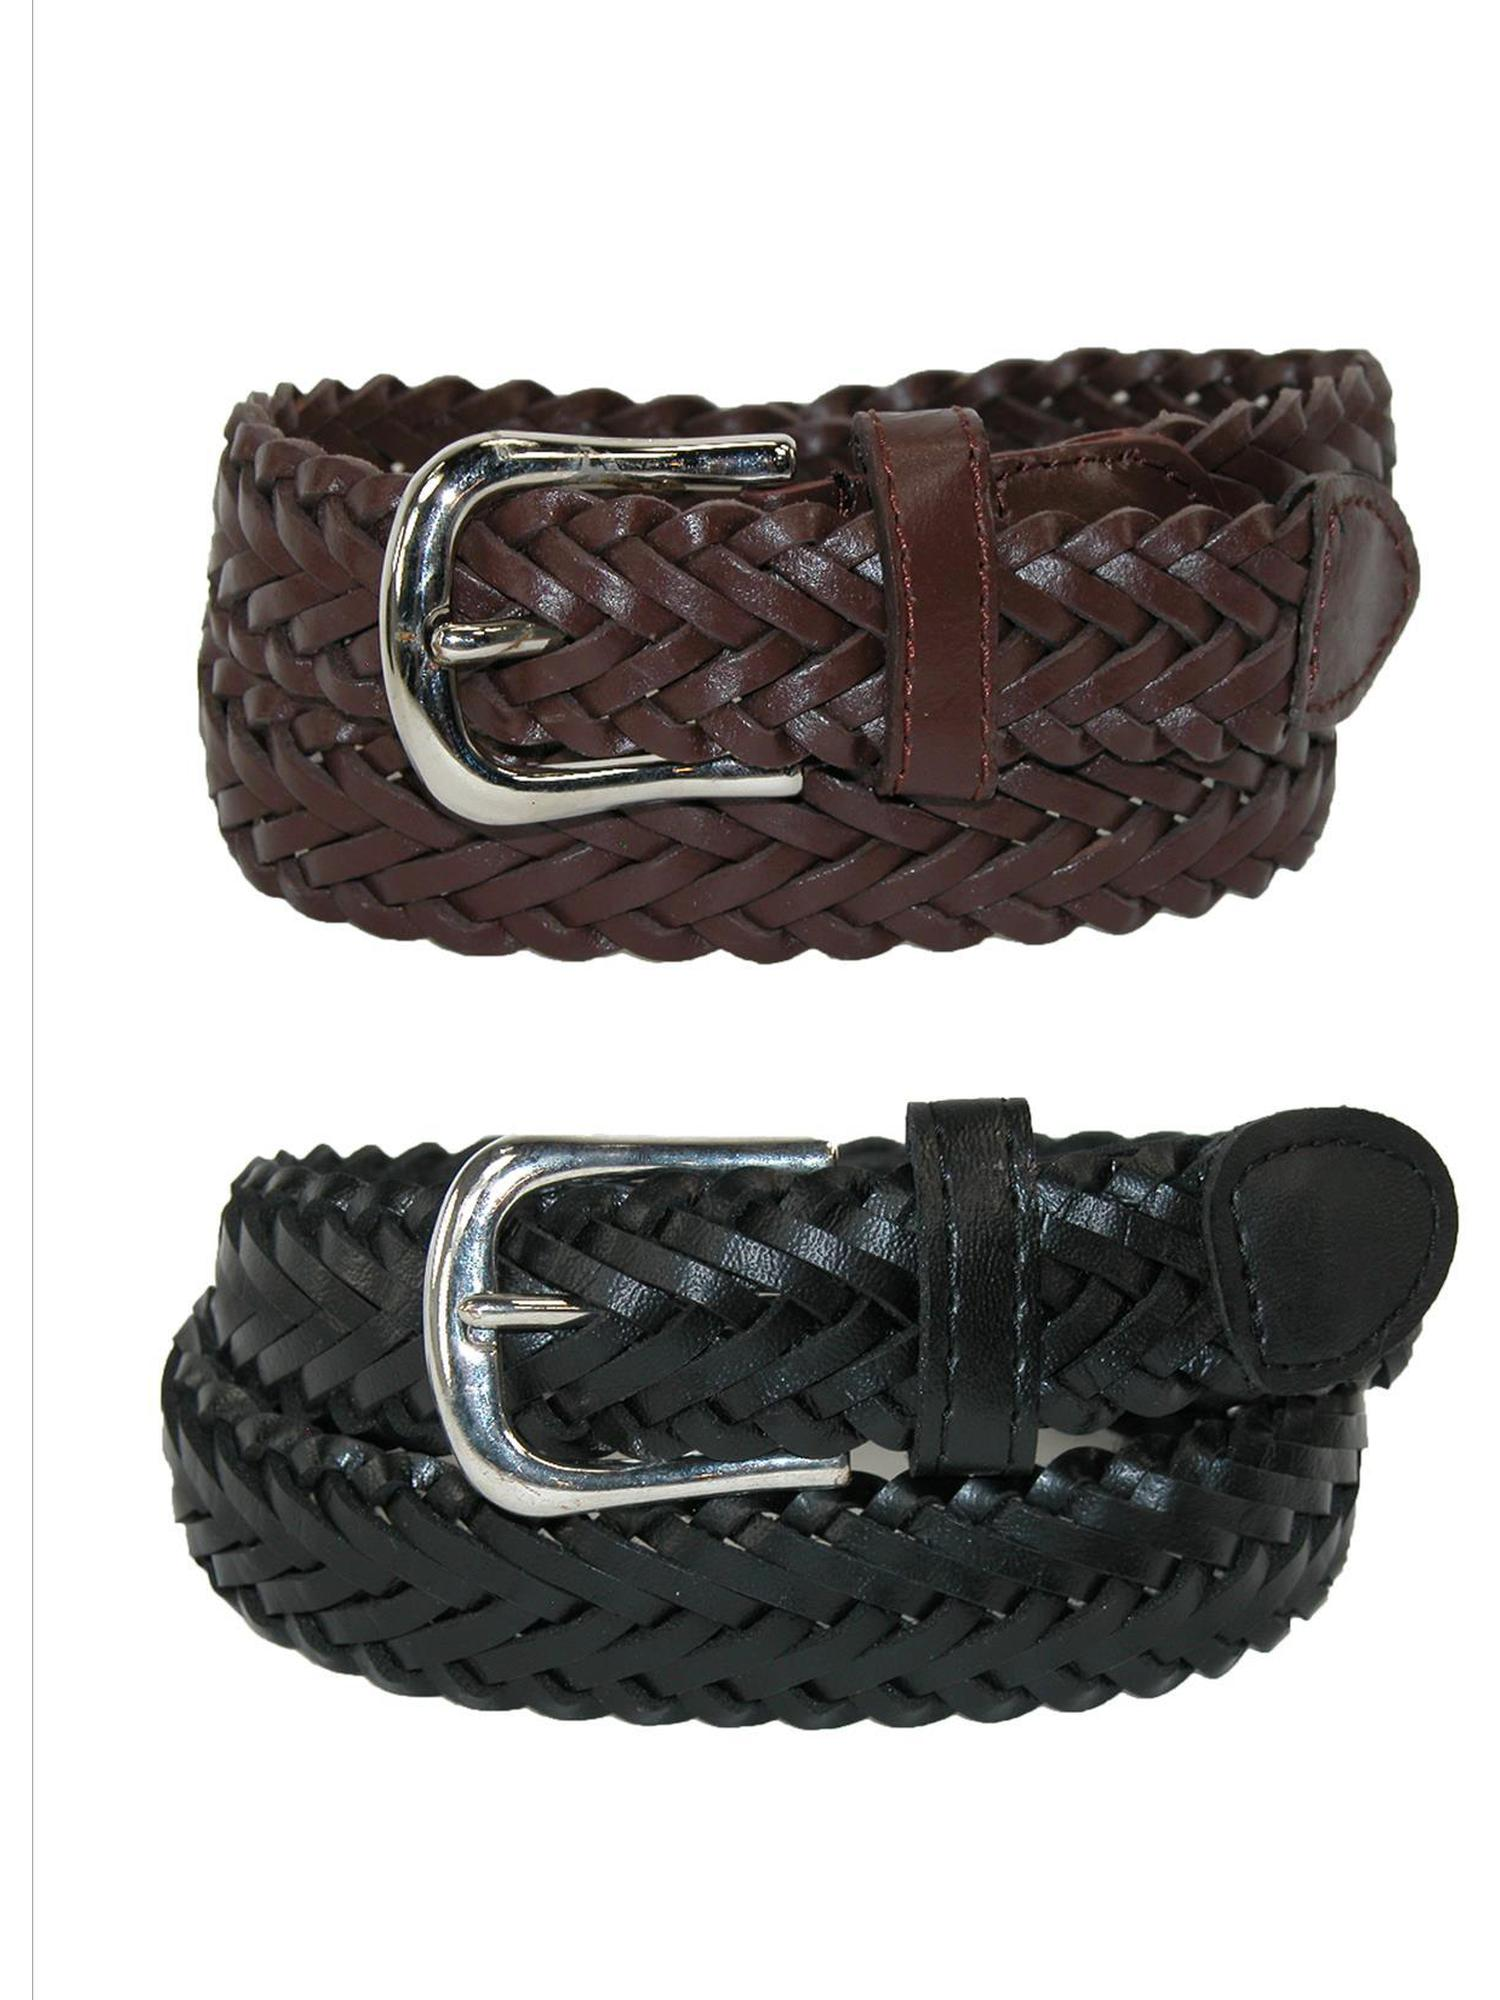 Size Large Boys Leather Adjustable Braided Dress Belt (Pack of 2 Colors), Black and Brown